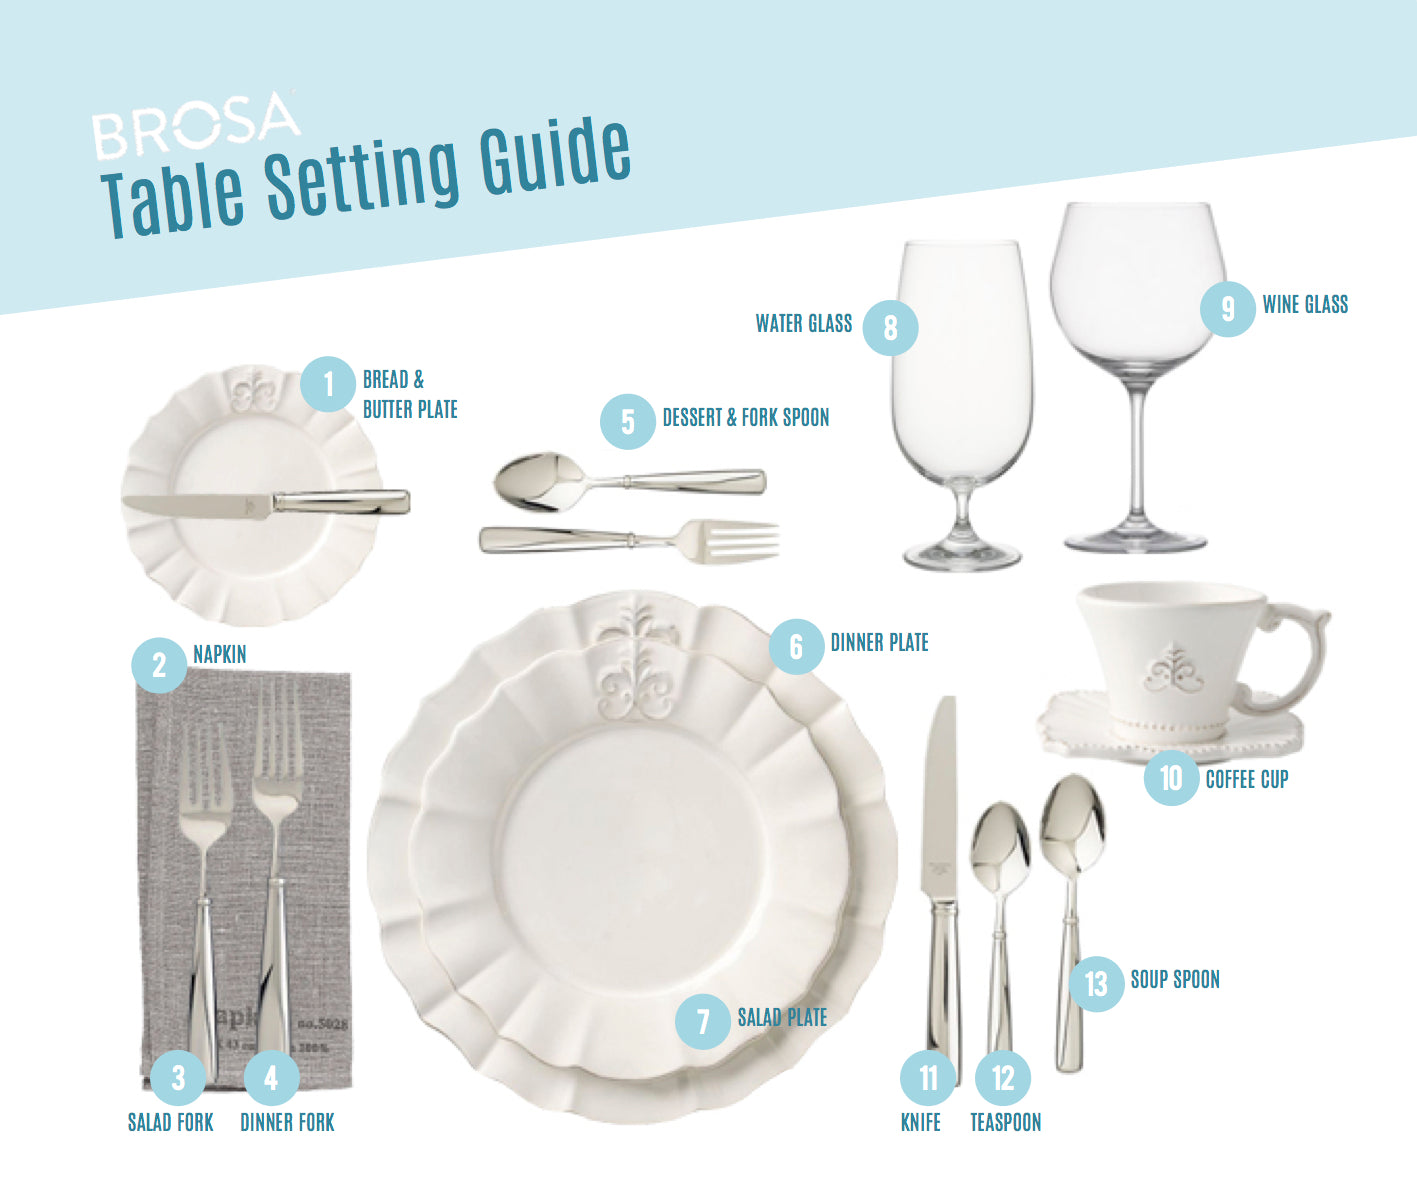 Brosa's Table Setting Guide